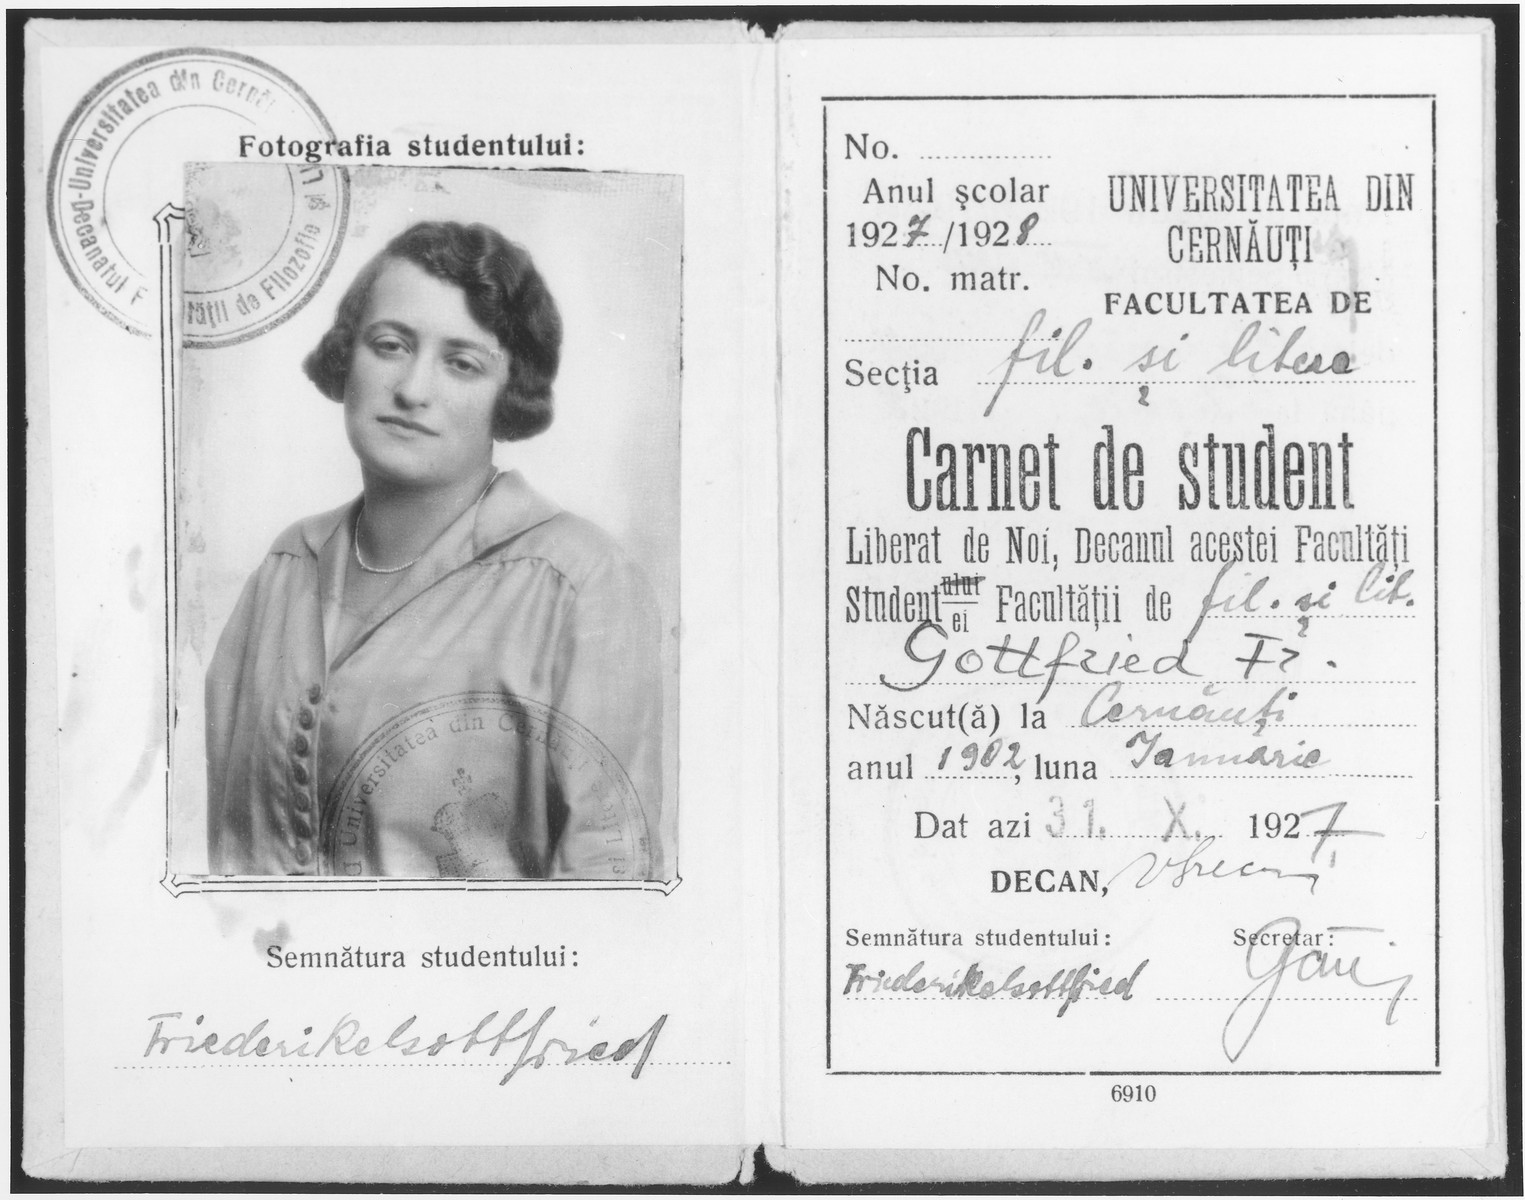 University of Czernowitz student identification card issued to Friedricke Gottfried for the school year 1927-1928.